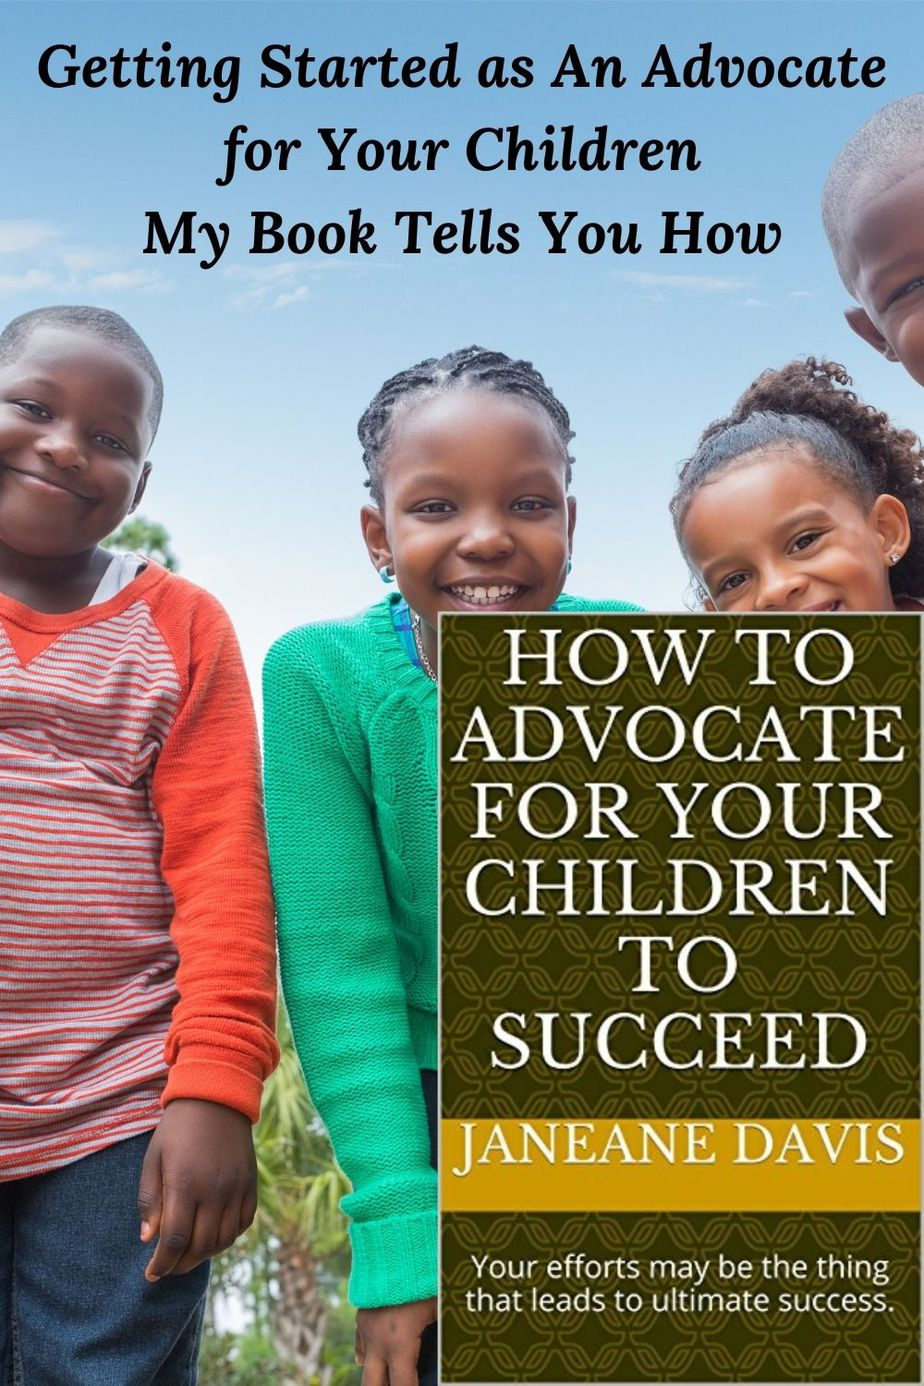 Picture of smiling African-American children and cover of book How To Advocate for Your Children. Getting Started as an Advocate for Your Children my My Book Tells You How